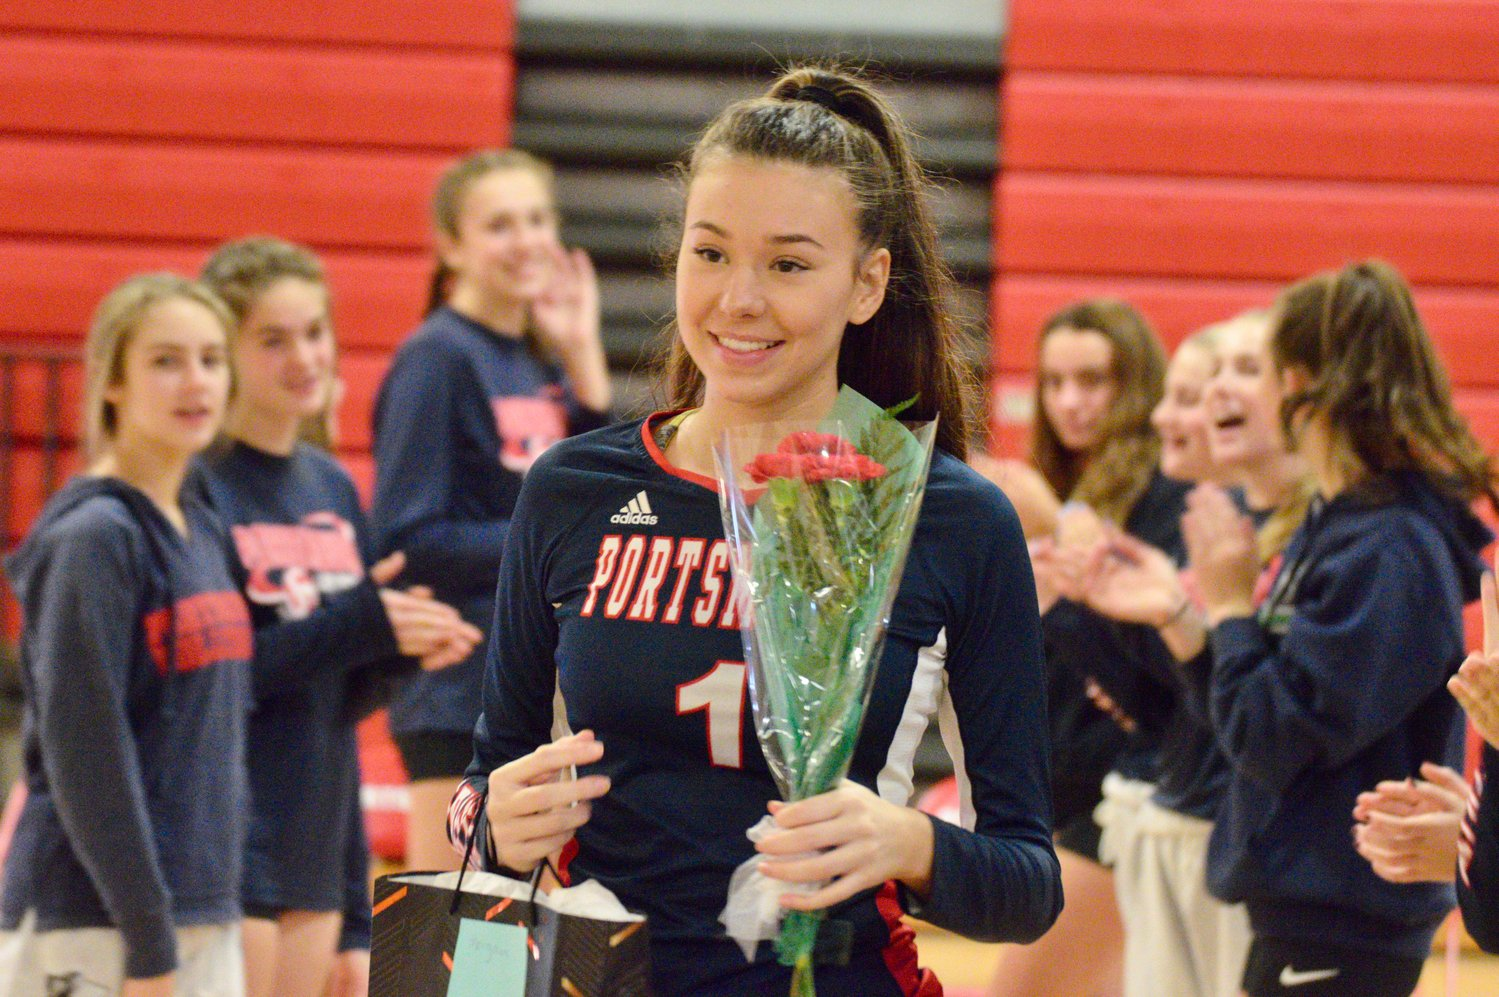 Morgan Shablom, a member of the PHS girls' volleyball team, smiles after receiving flowers after her introduction on Senior Night Monday.